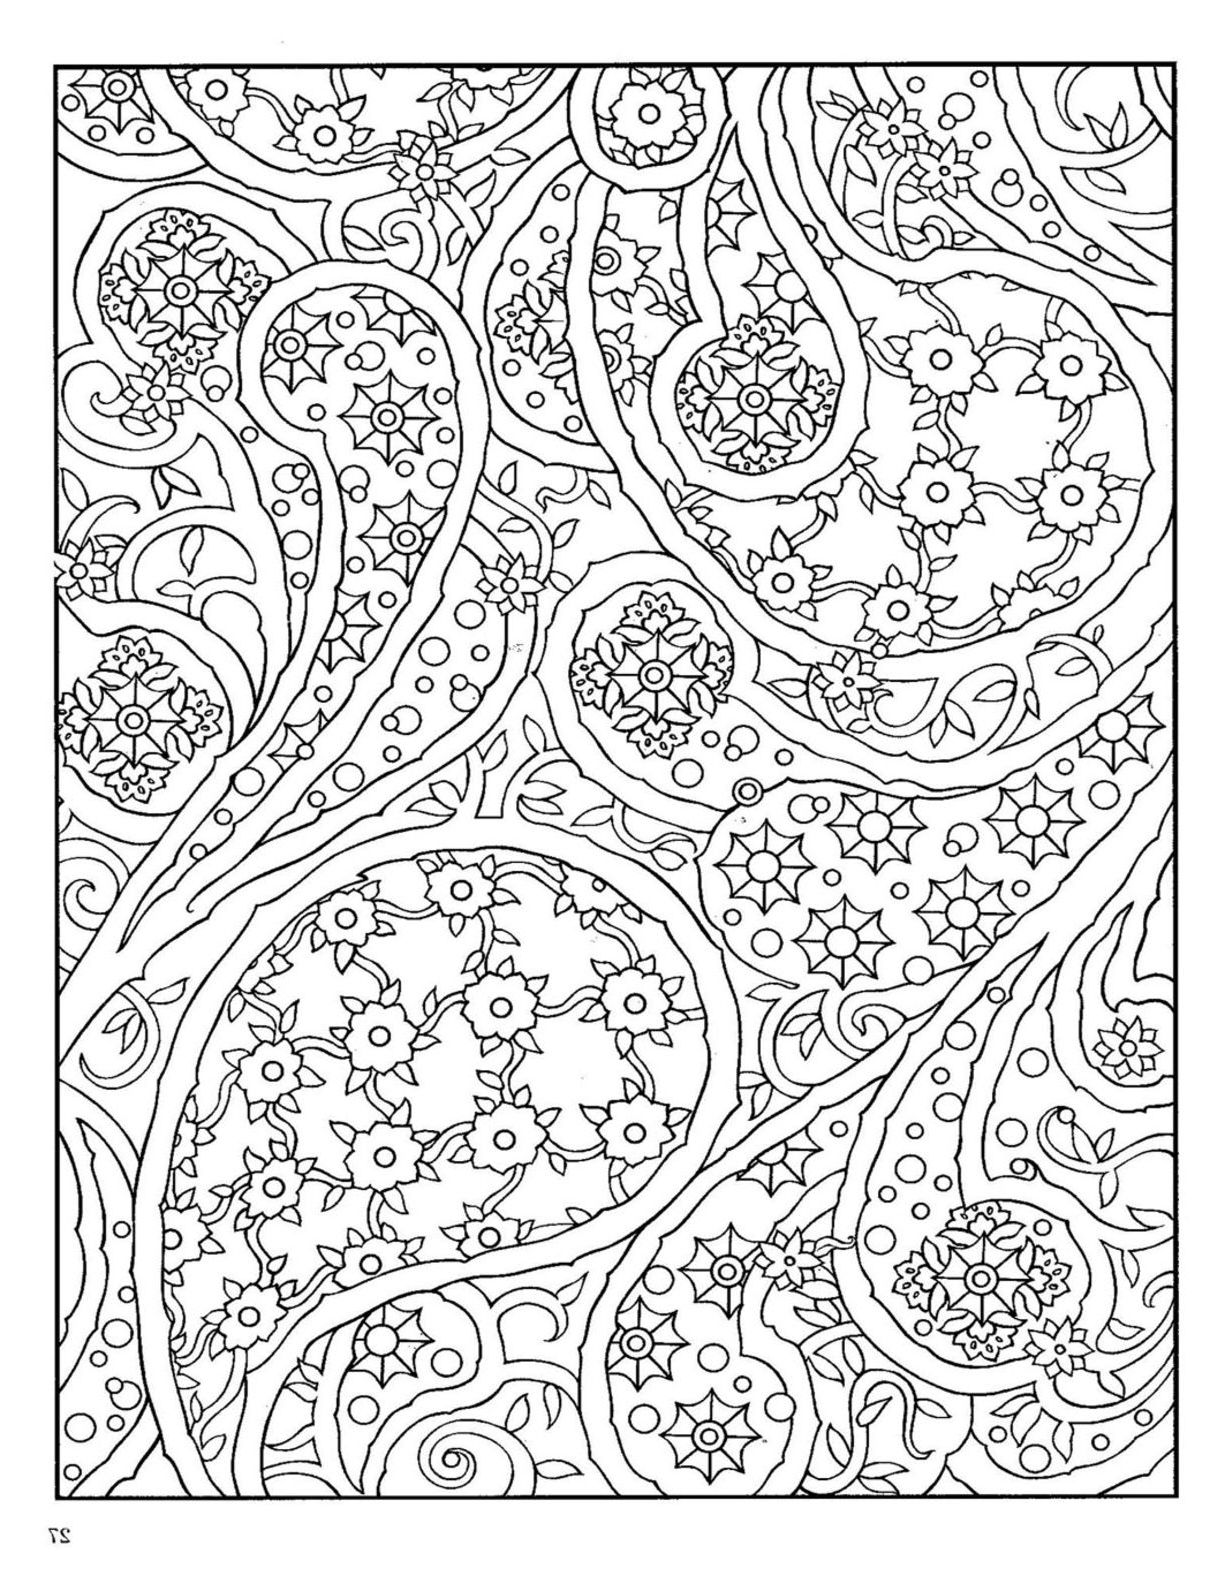 Paisleys Coloring Book Paisley Coloring Pages Designs Coloring Books Animal Coloring Pages